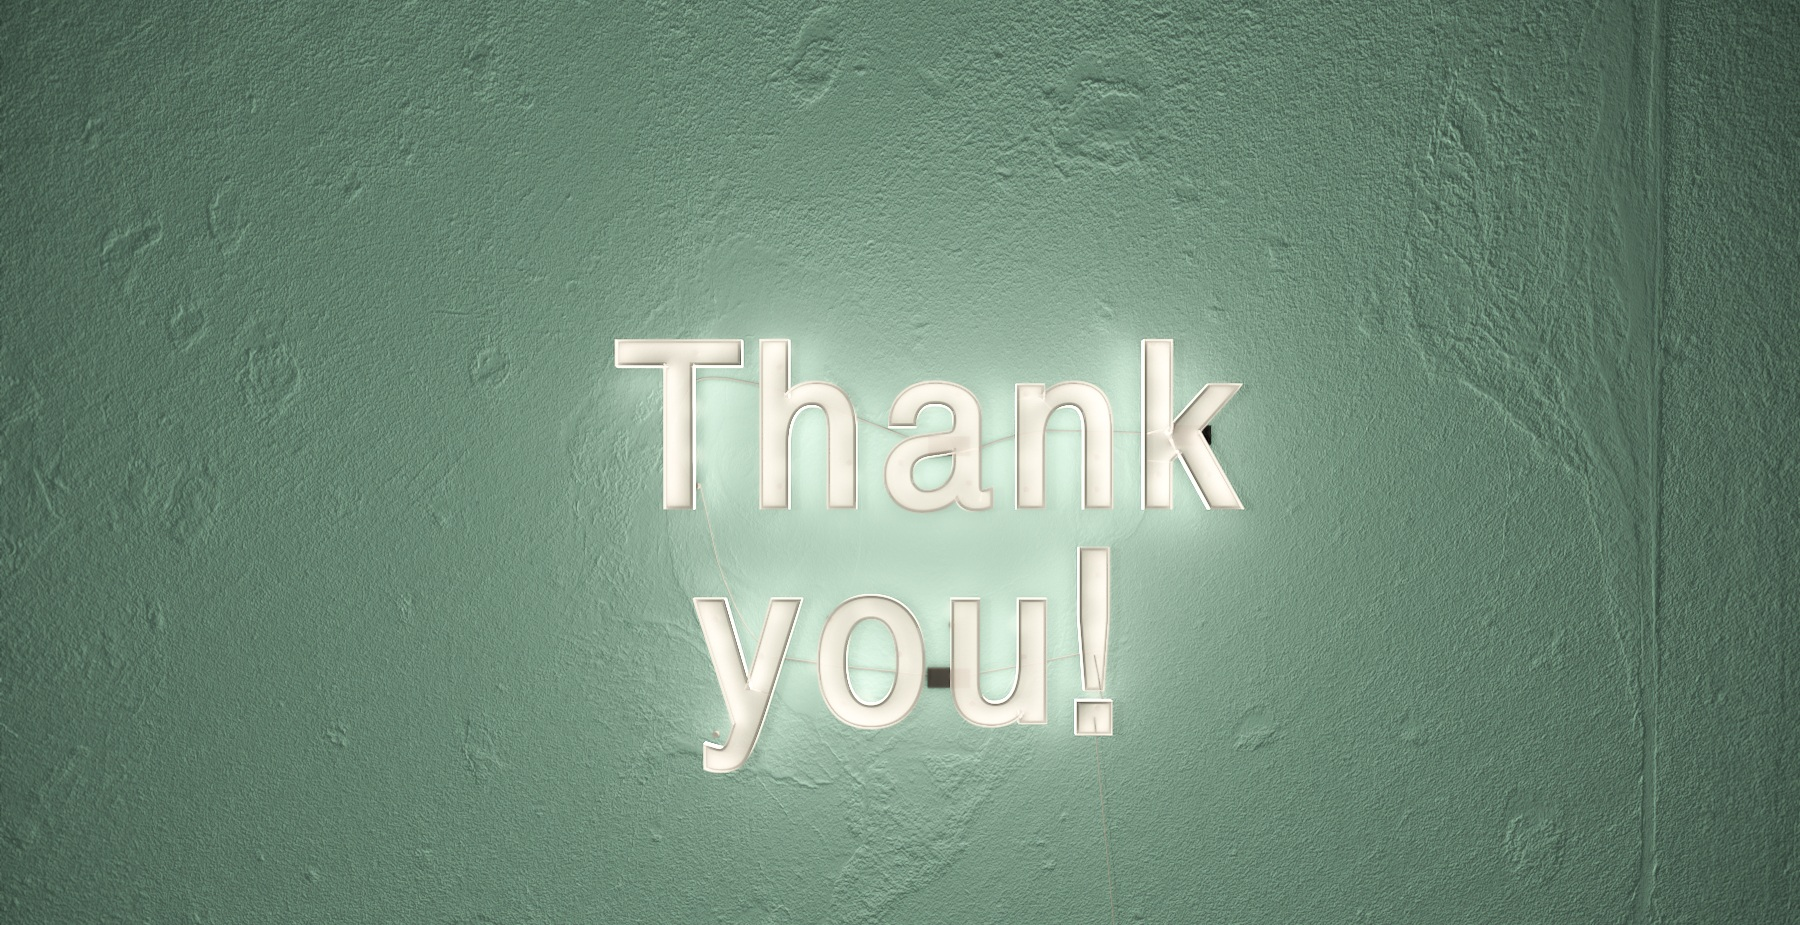 Use your thank you - page effectively